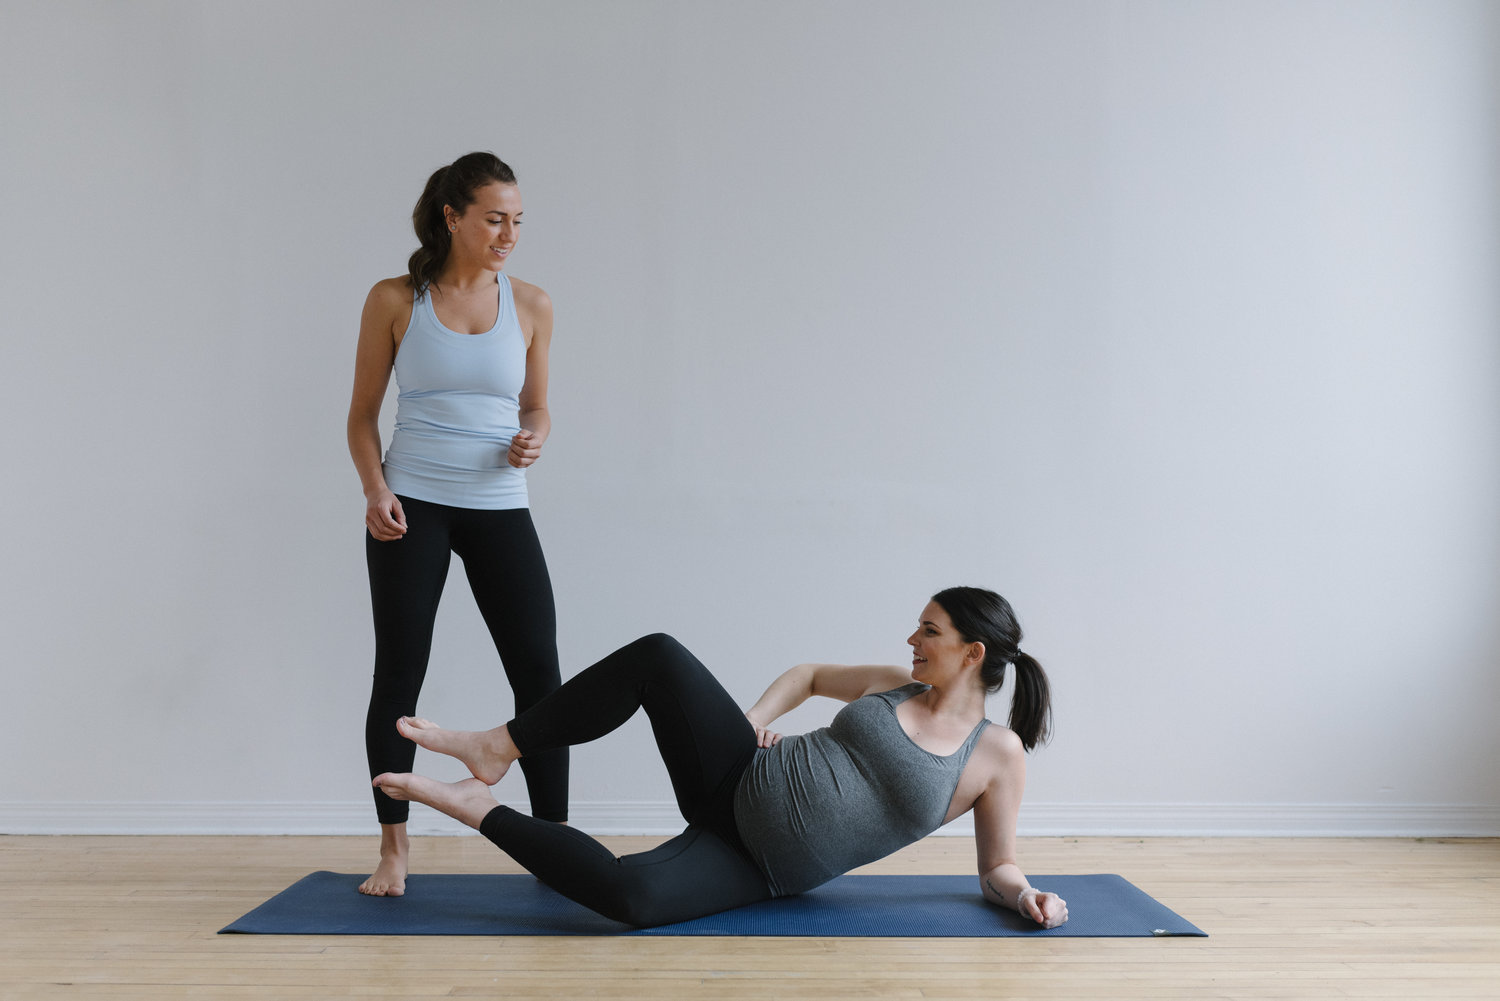 Prenatal+yoga+poses+for+every+trimester+_+Sam+D+Squire (2).jpeg